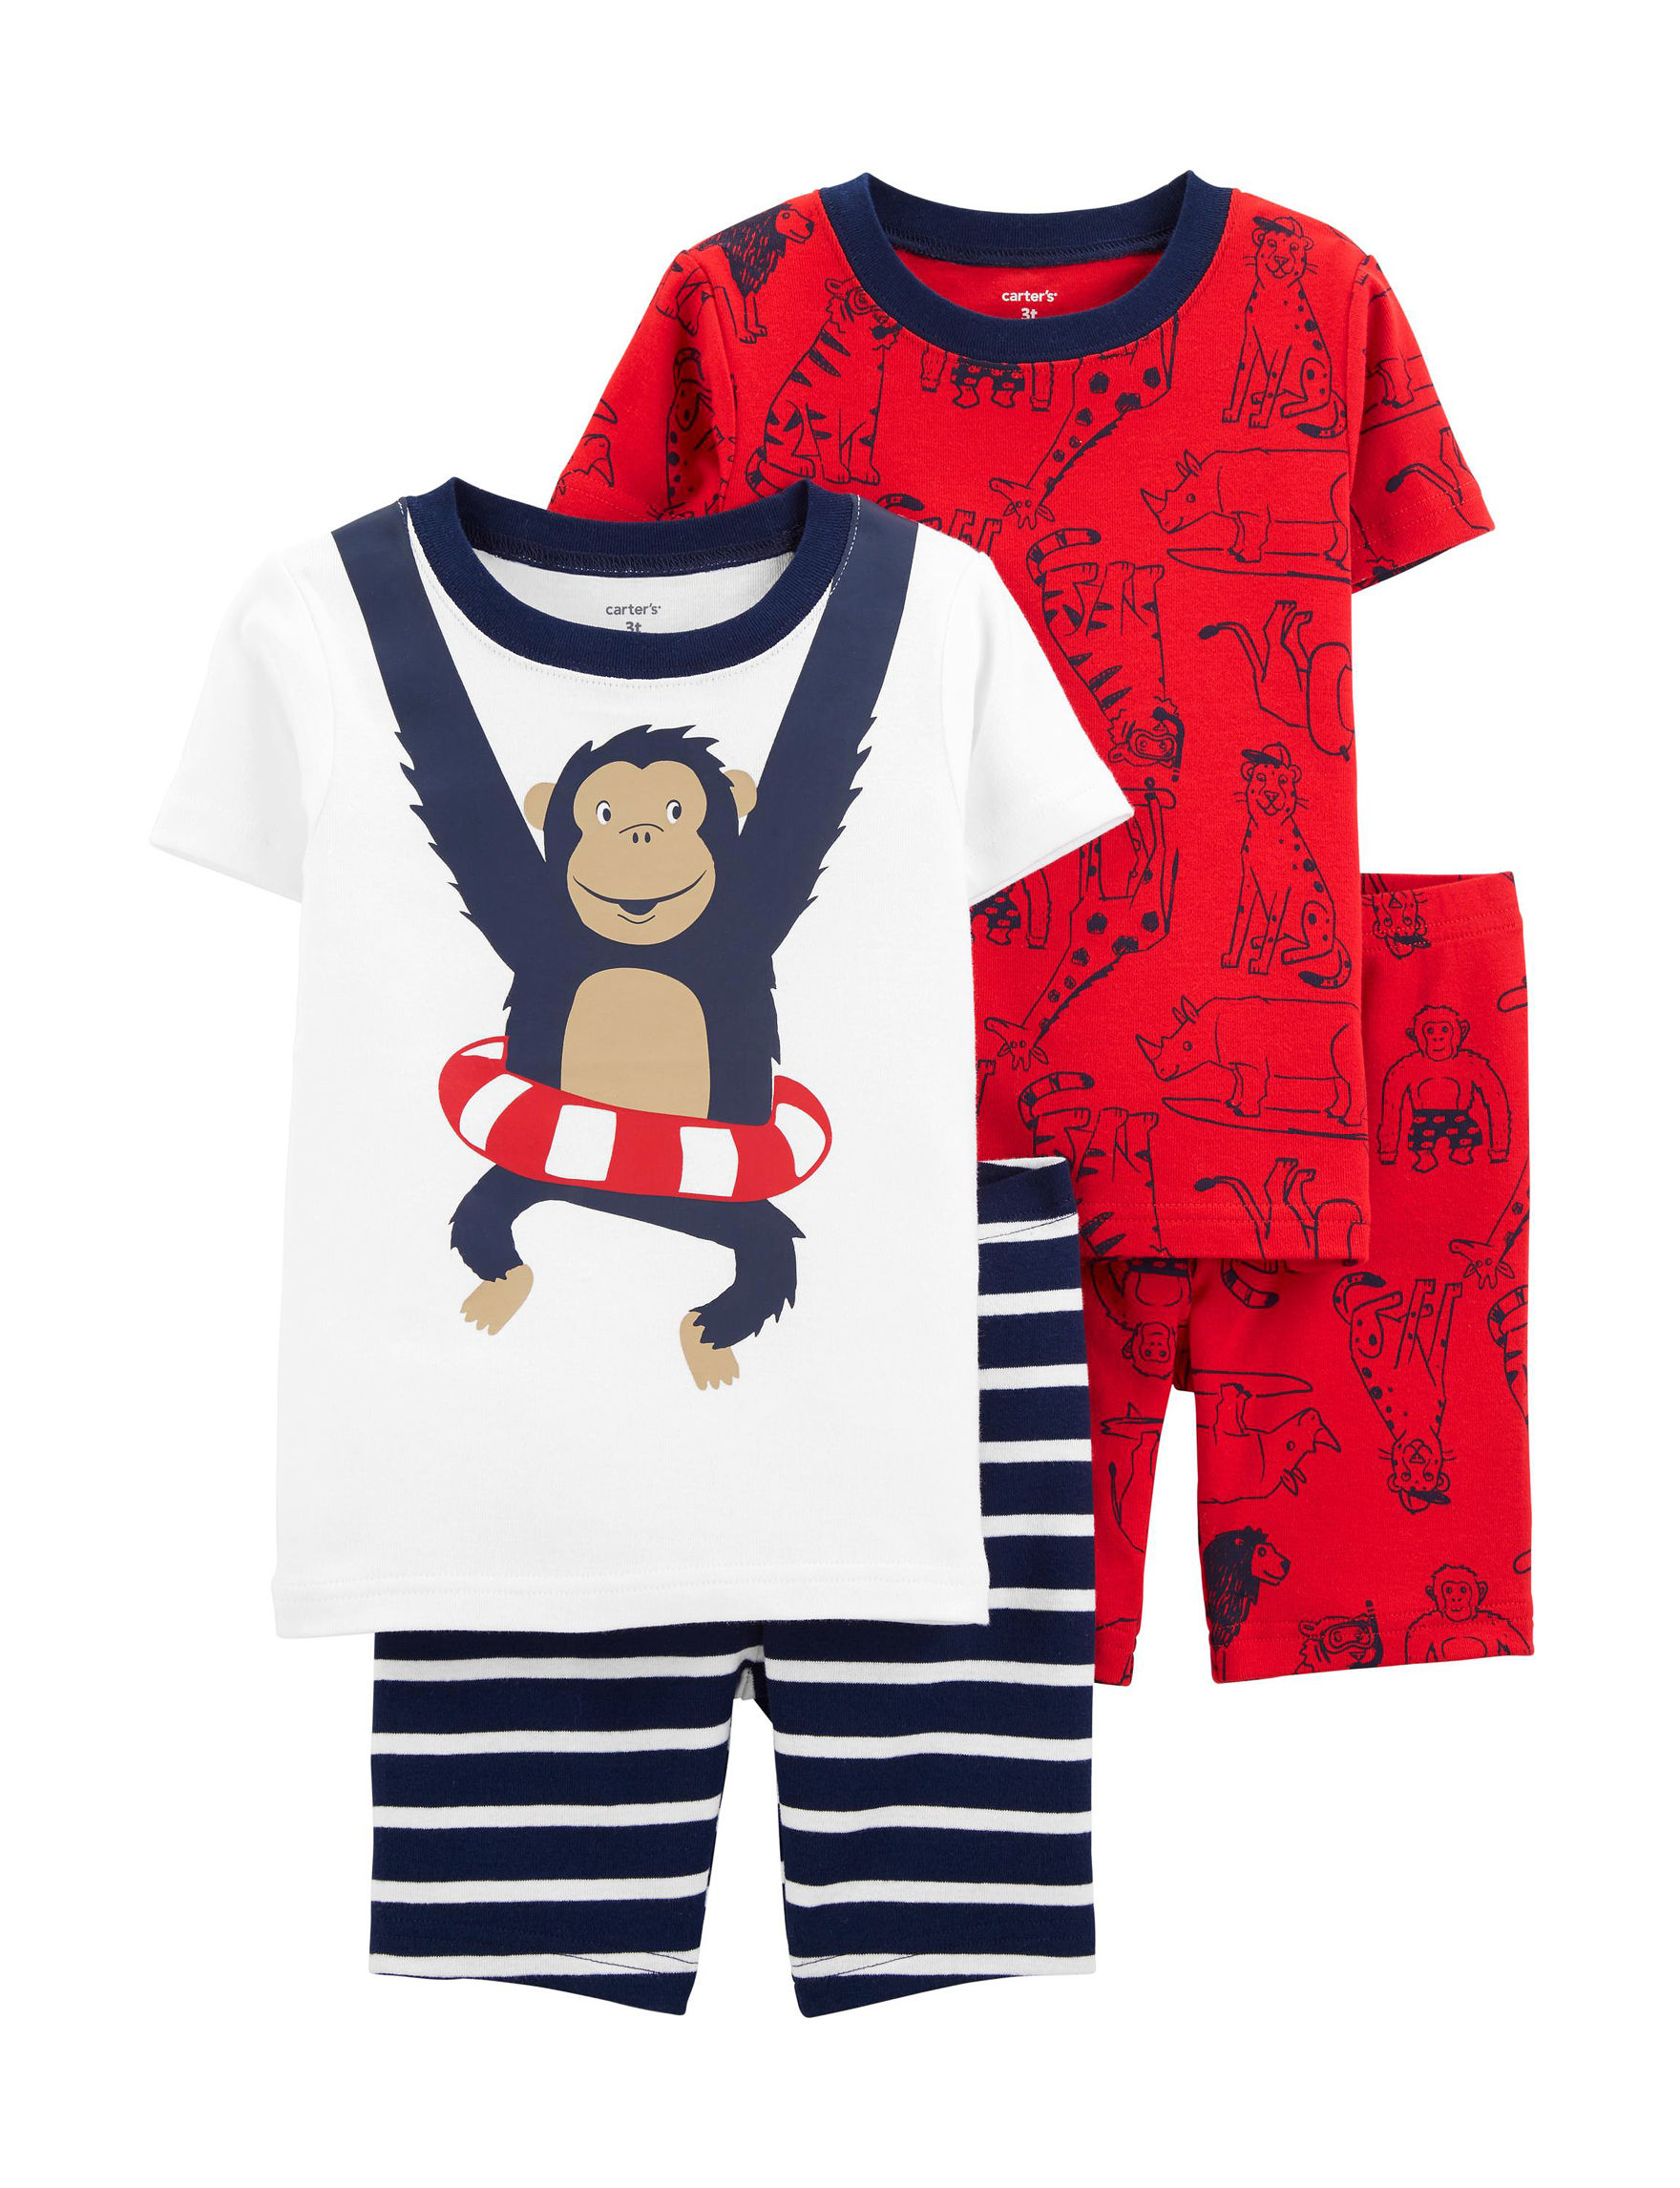 Carter's Navy / Red Pajama Sets